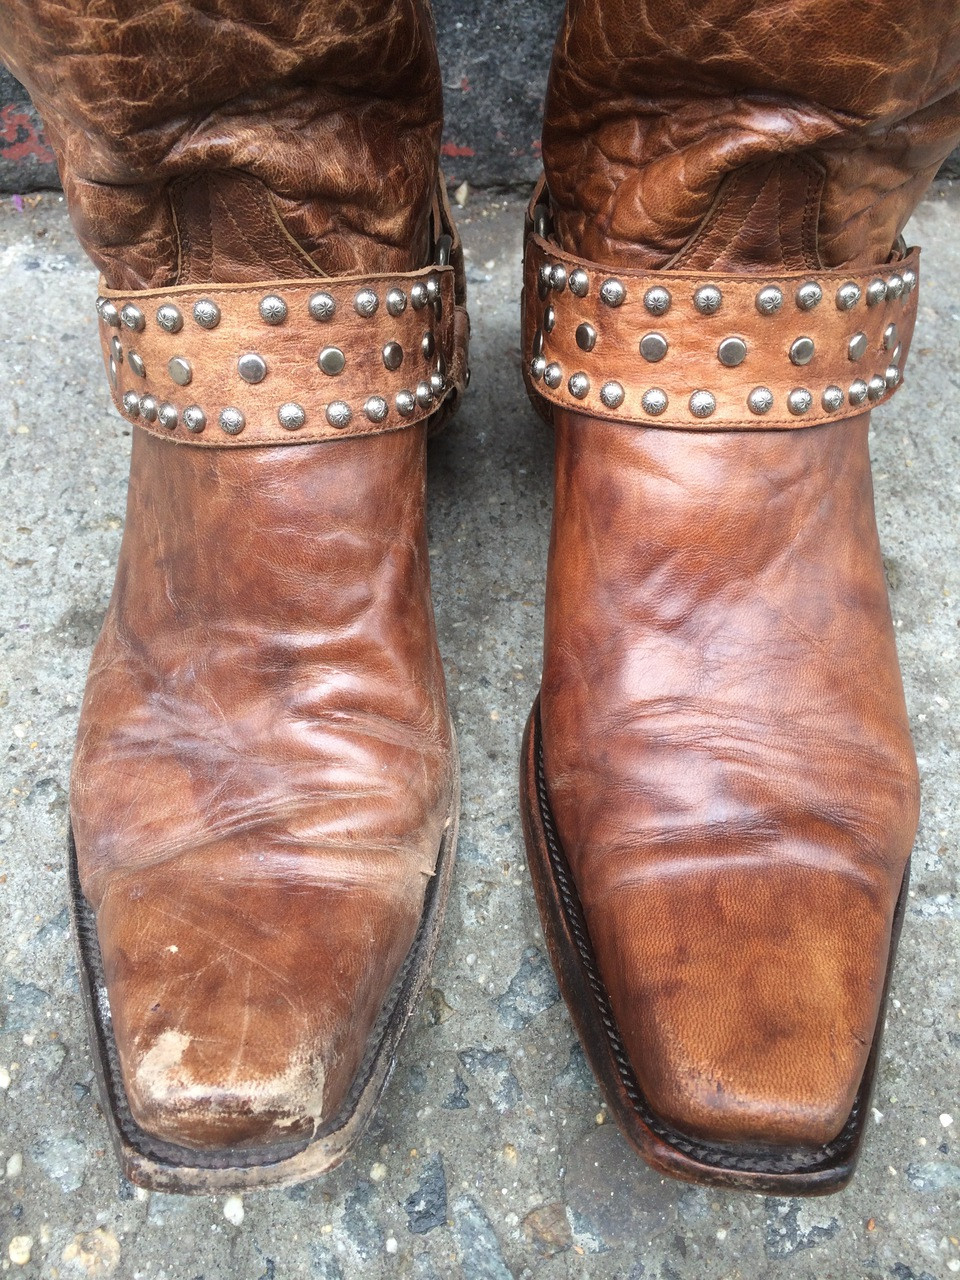 blackrock leather n rich conditions best boot cleaner